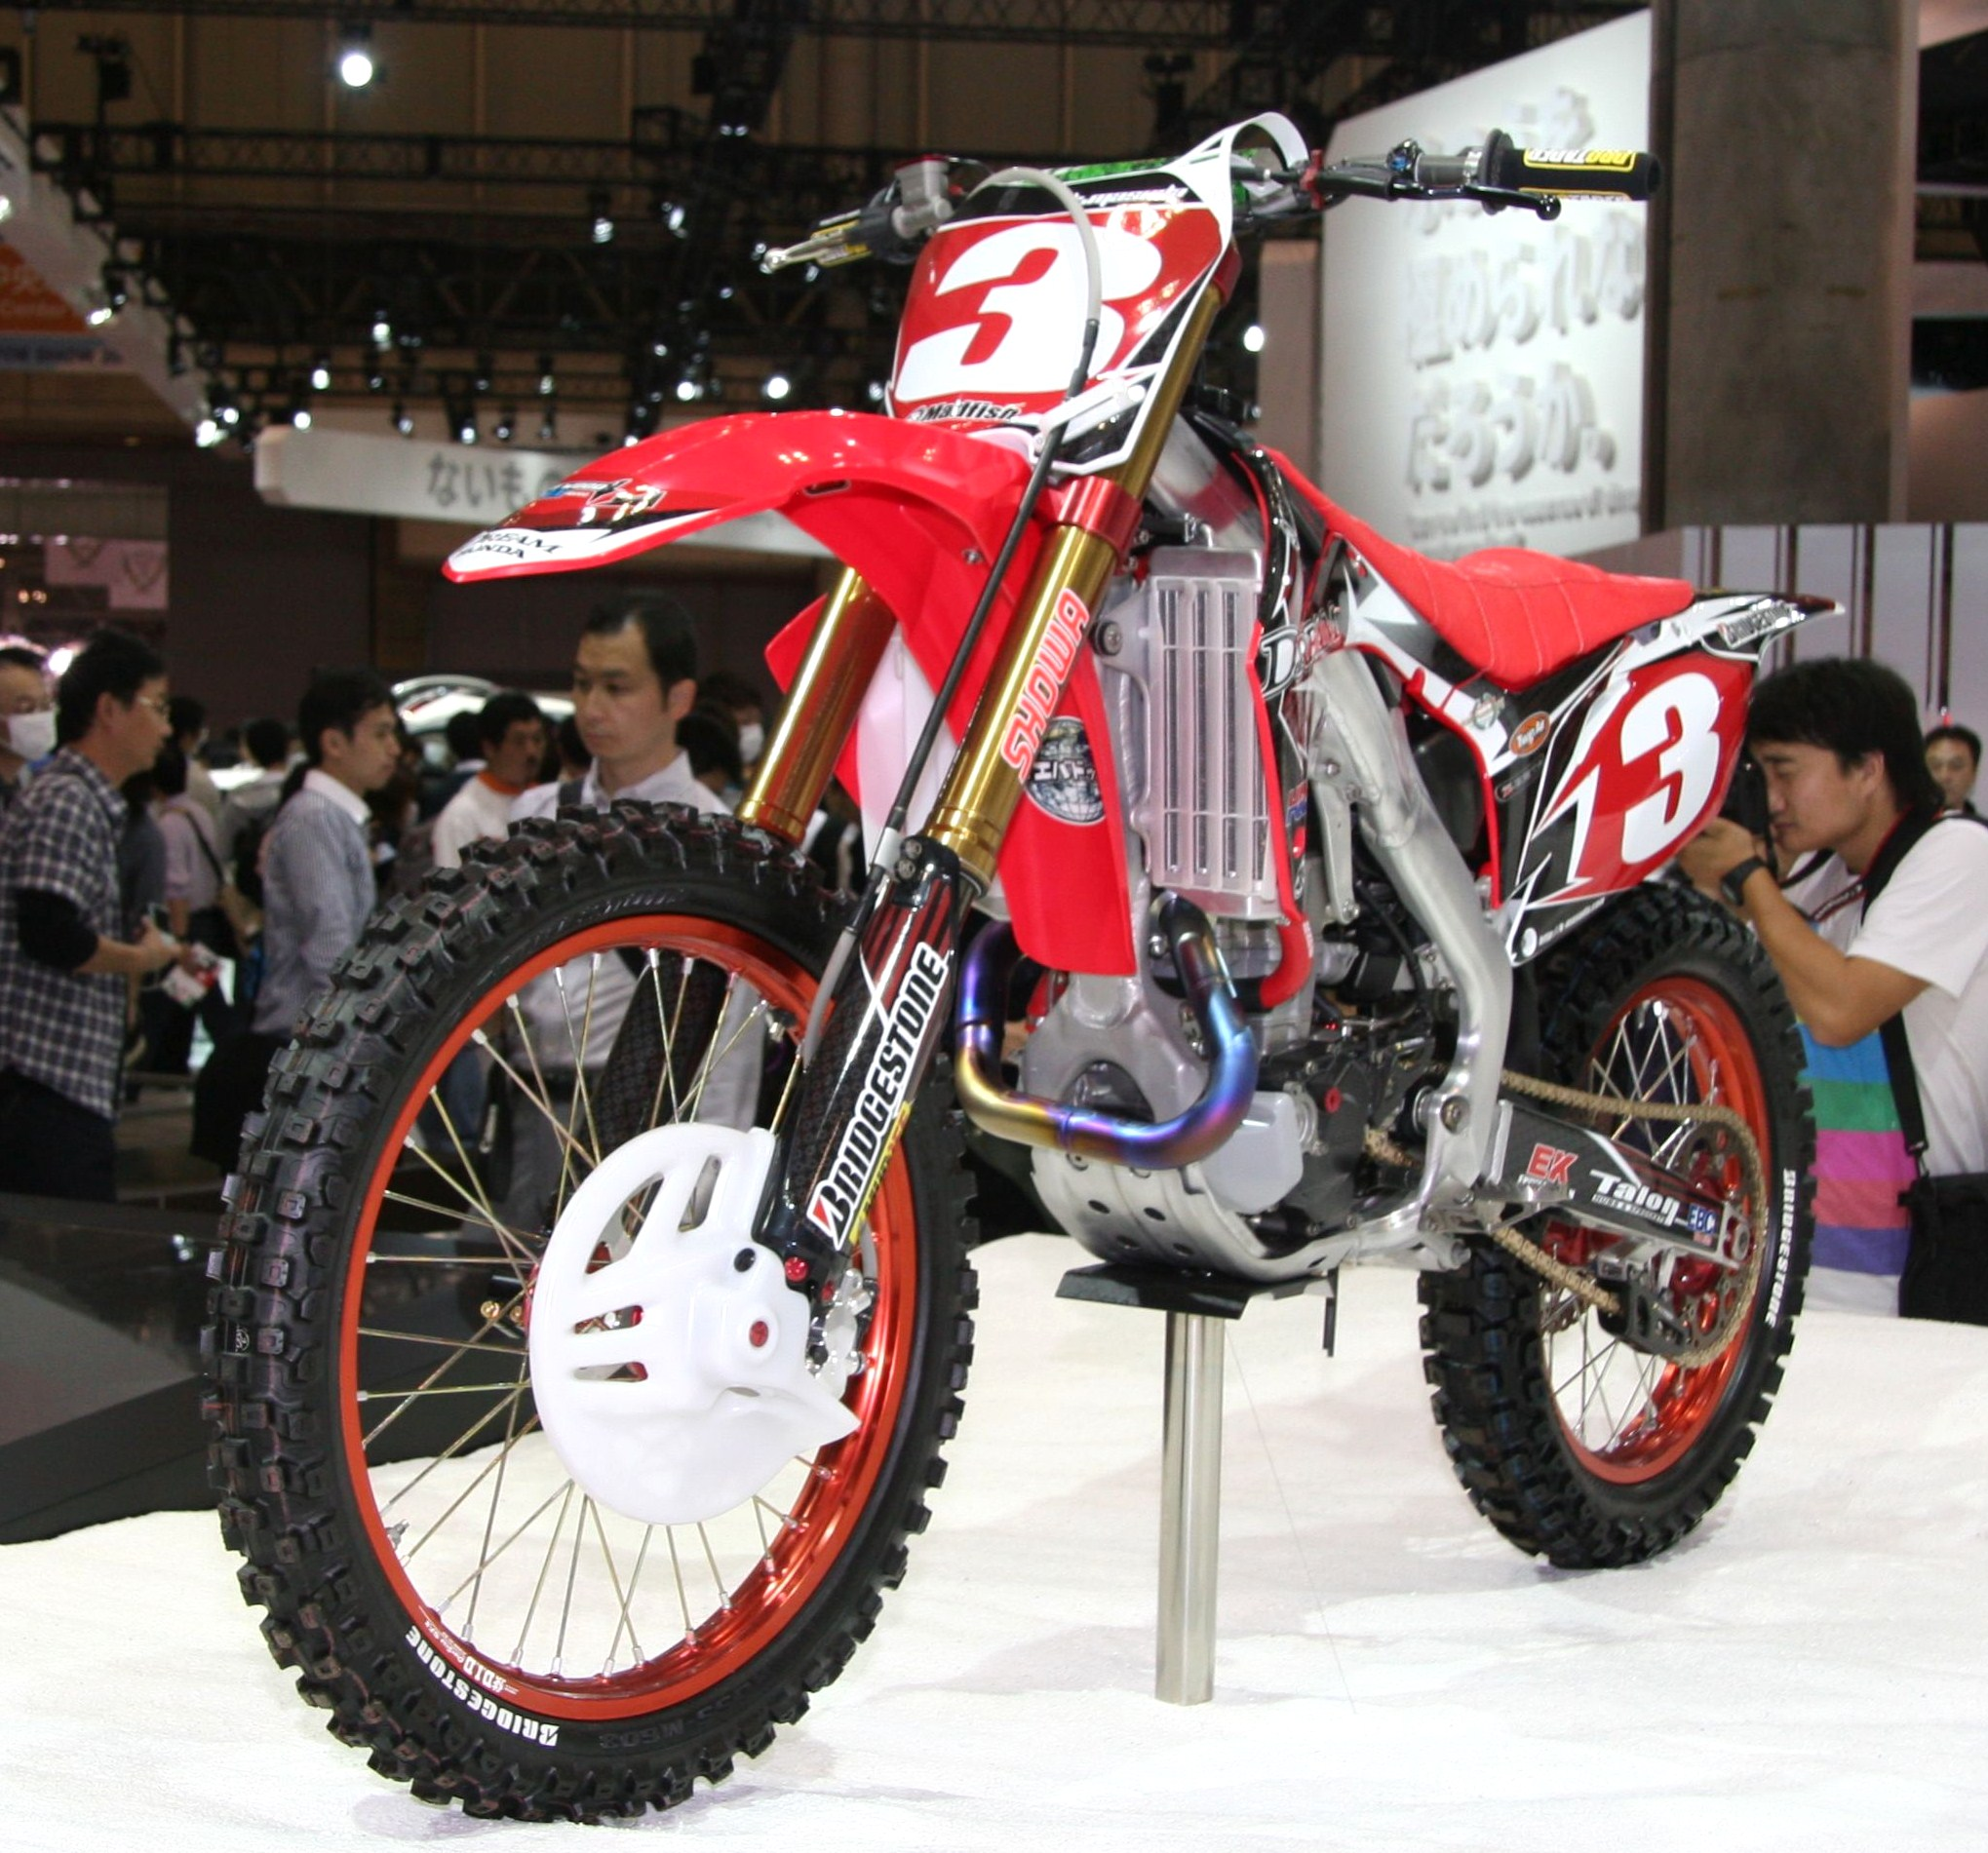 Honda crf450r photo - 1